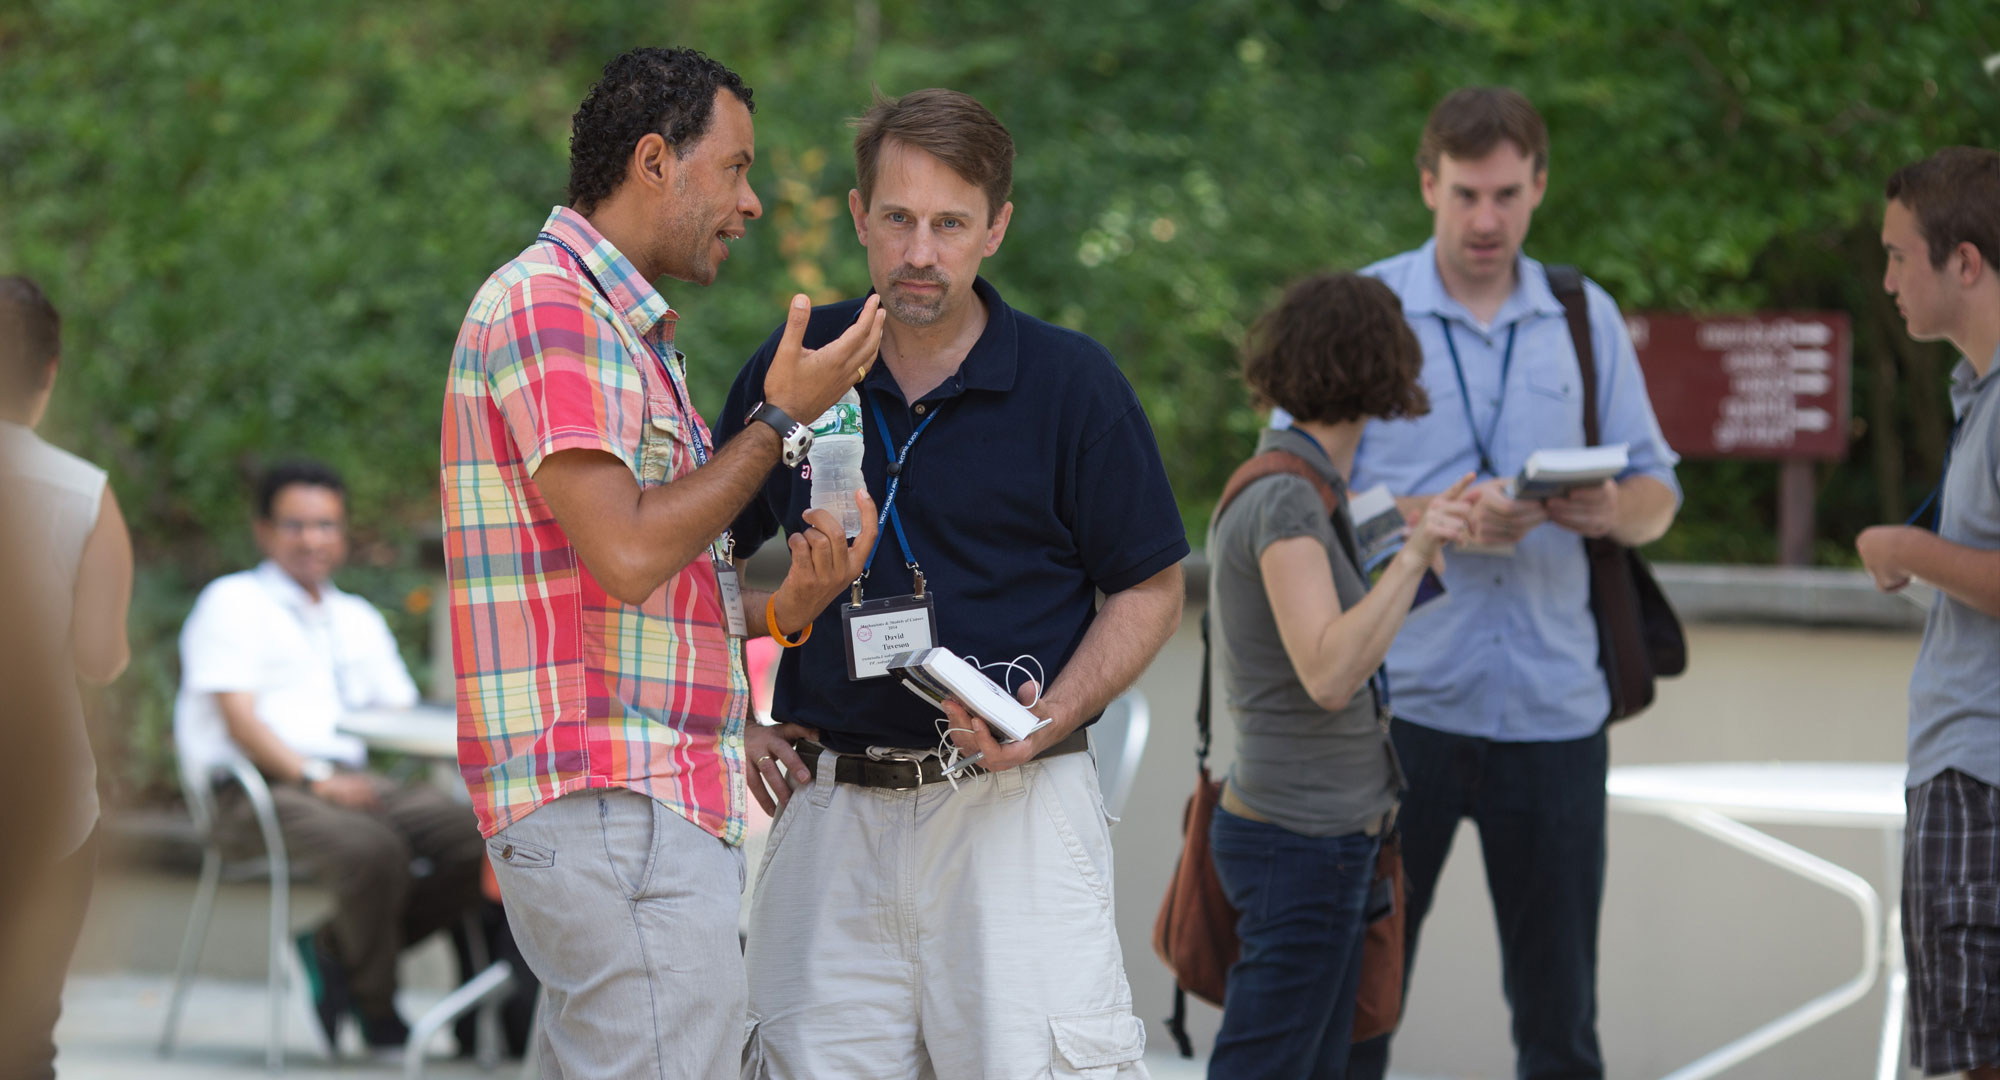 CSHL scientists